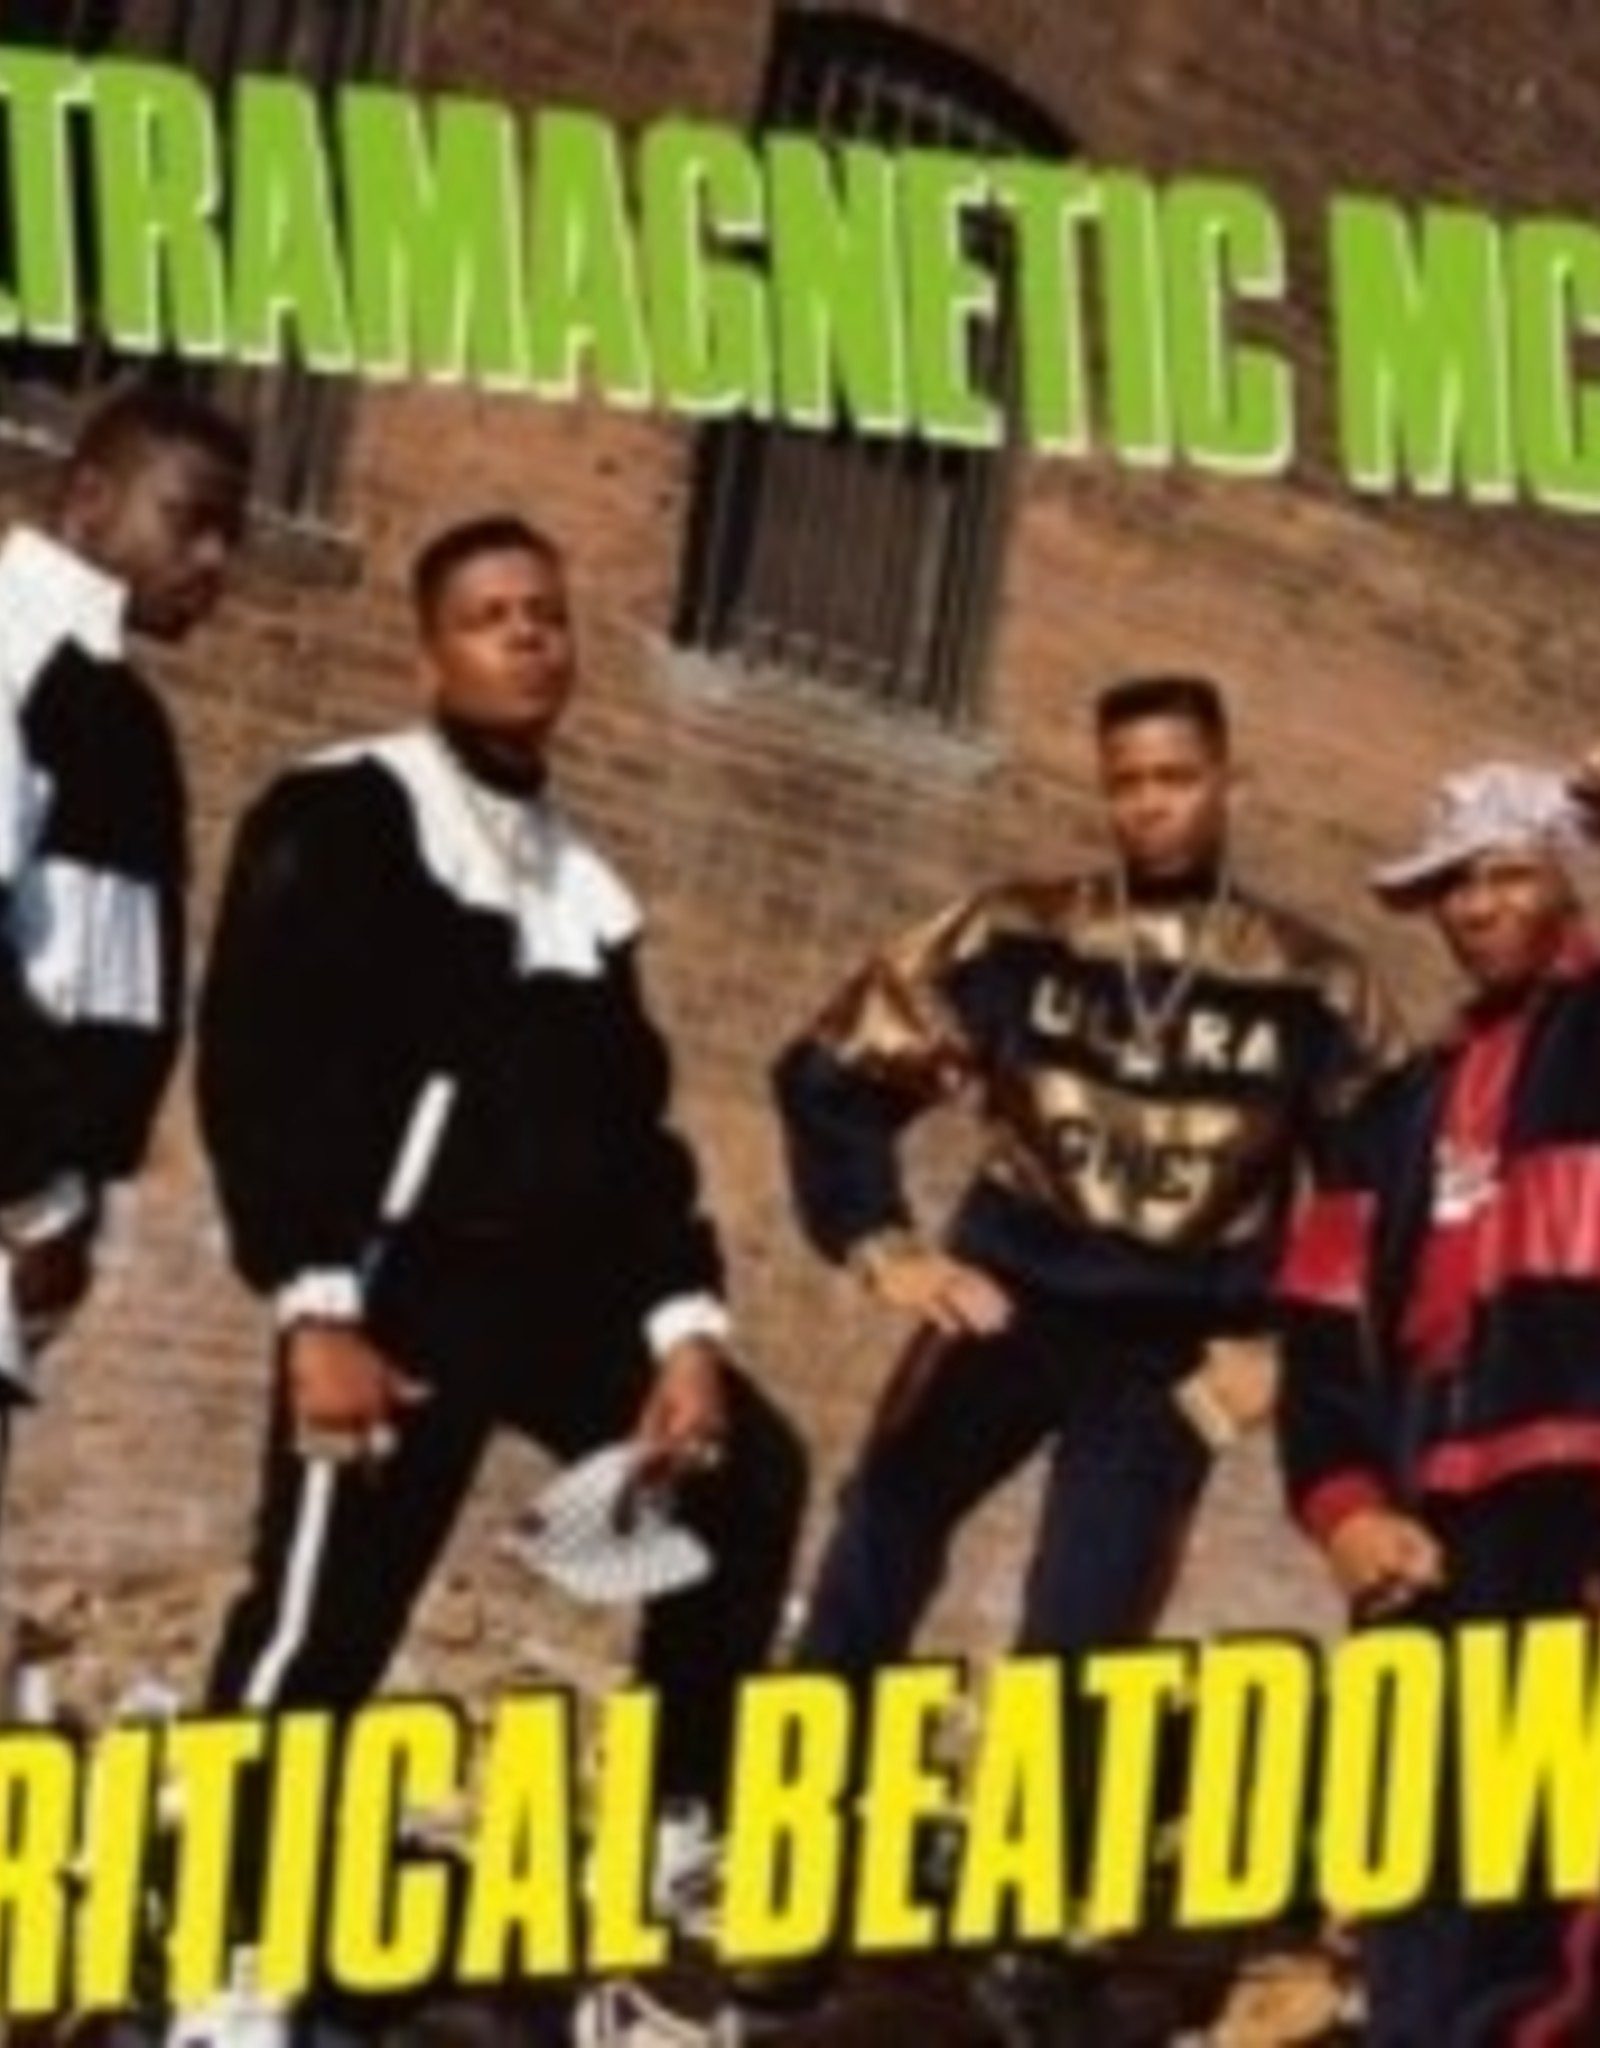 Ultramagnetic MC's - Critical Beatdown [Expanded Edition, Limited 180-Gram Yellow Vinyl With Bonus Tracks]